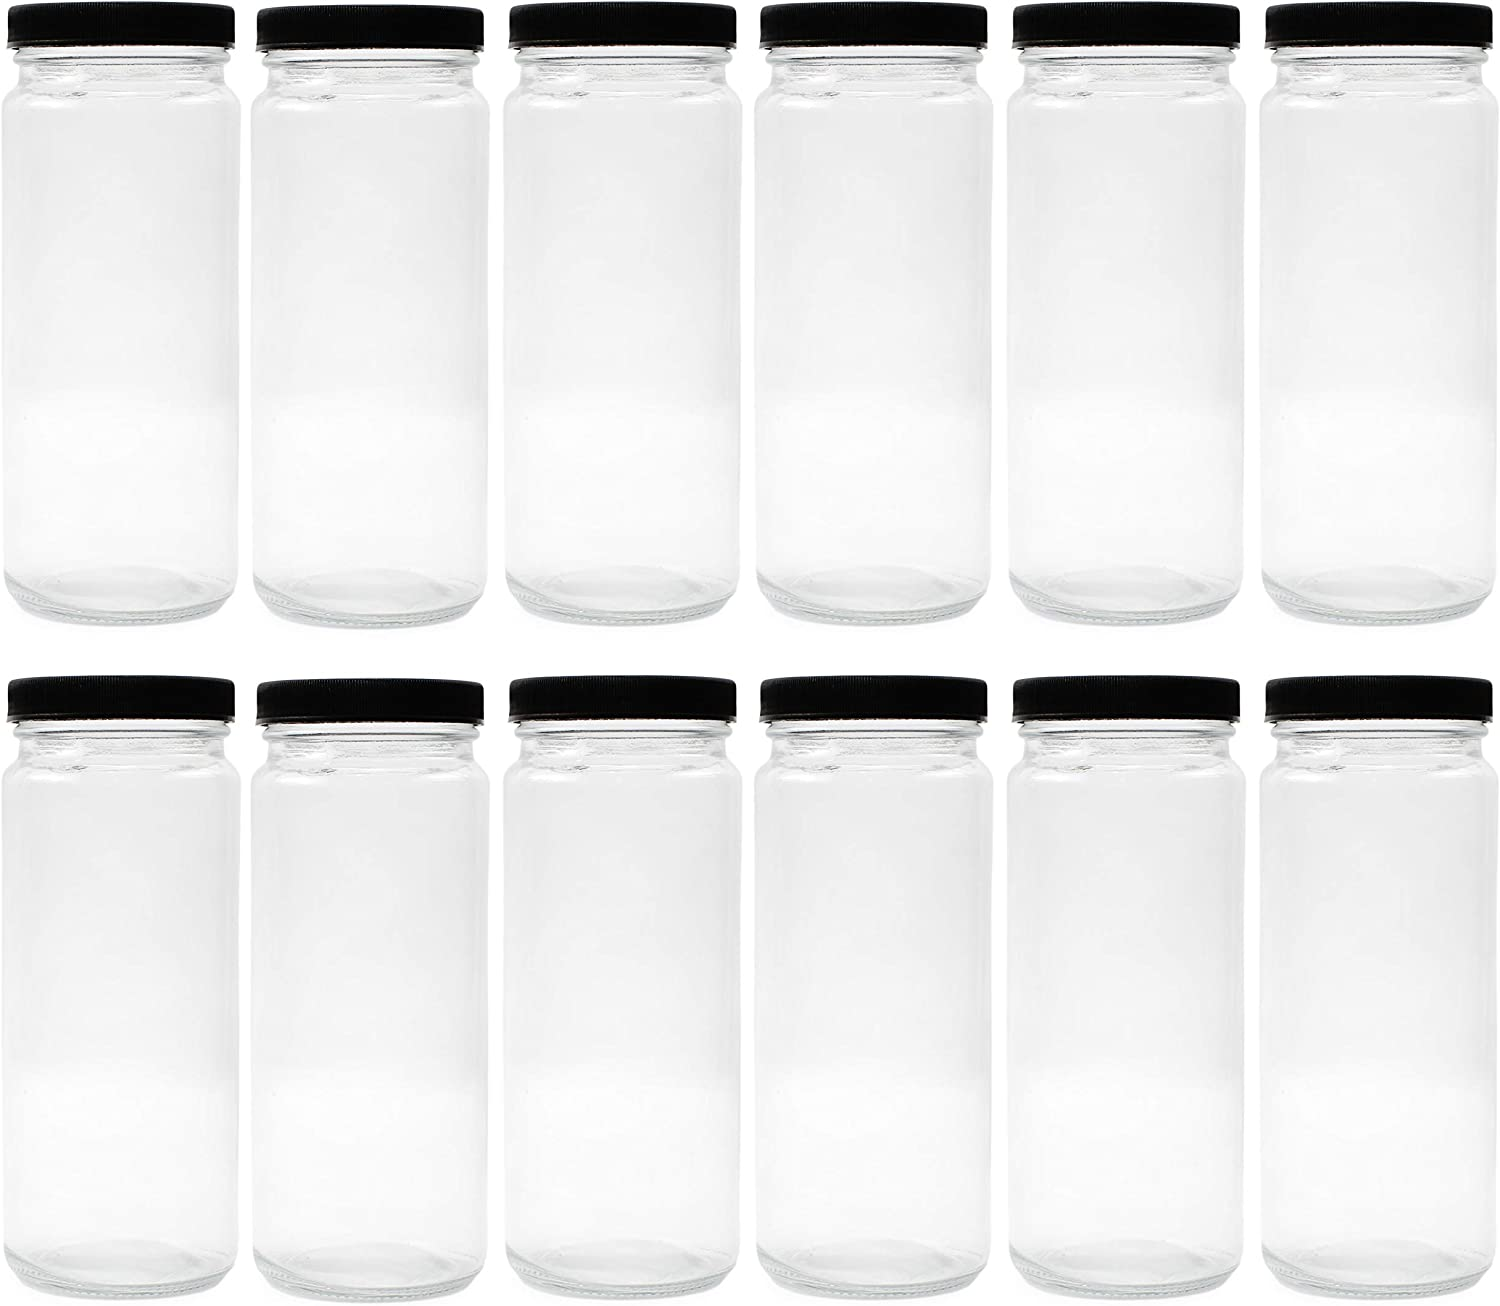 Cornucopia 16oz Glass Juice Jars (12-pack); Reusable Clear Glass Containers with Lids for Juicing, Smoothies, Kombucha, and Iced Tea